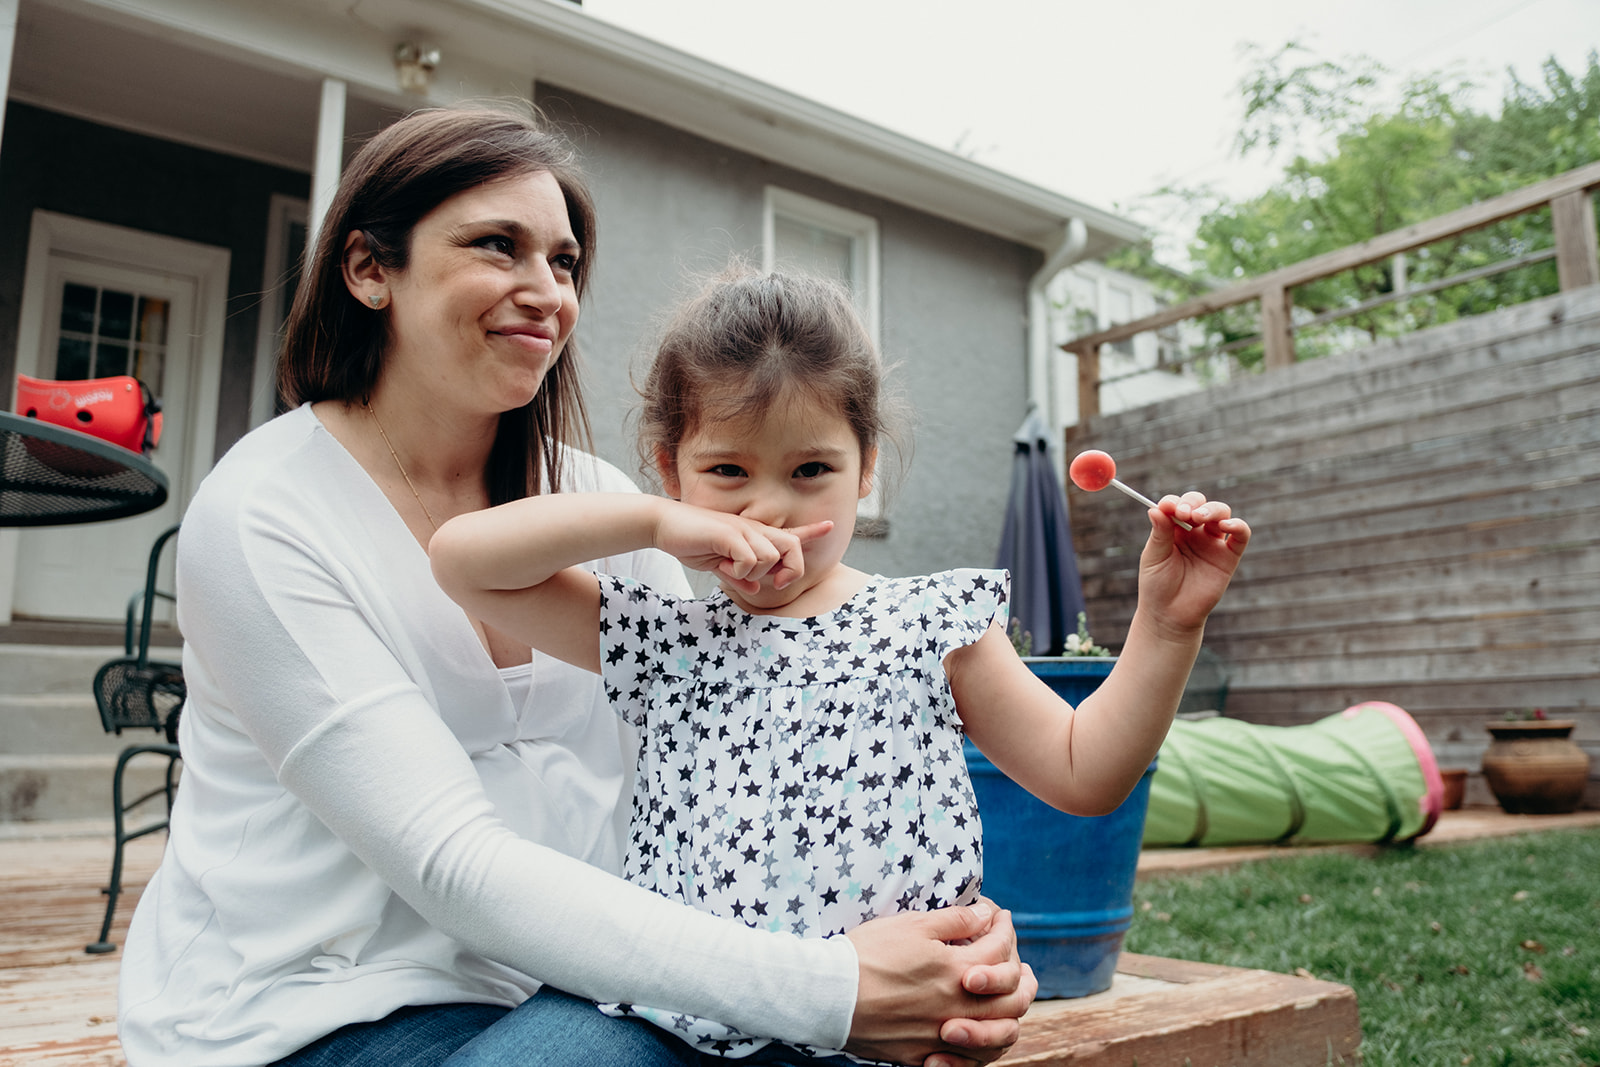 A little girl holds up her lollipop while sitting with her mother on the back deck of their DC home during an in-home family photography session.